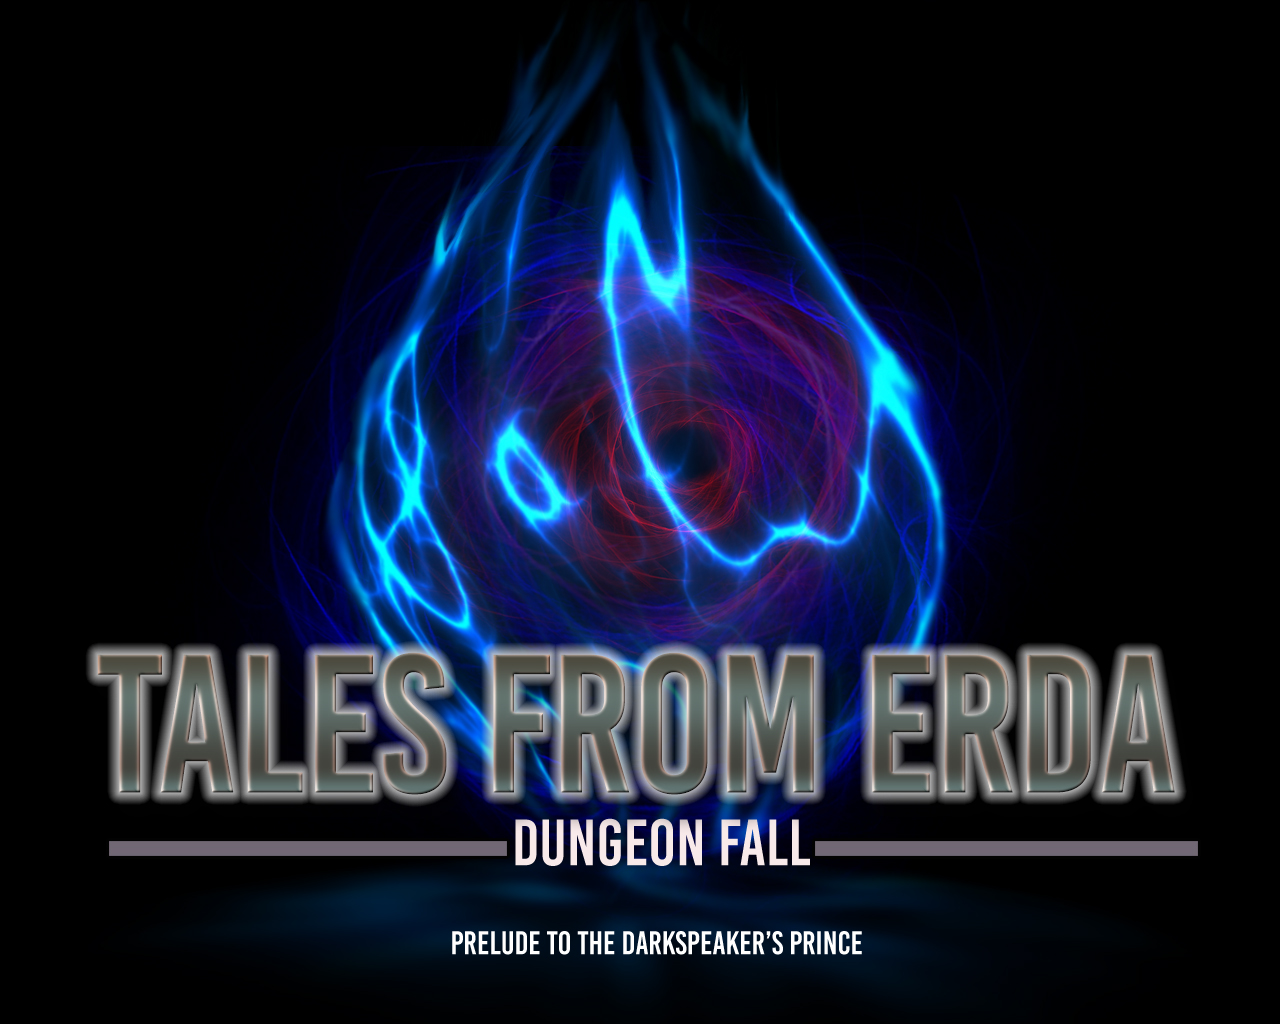 Dungeon Fall